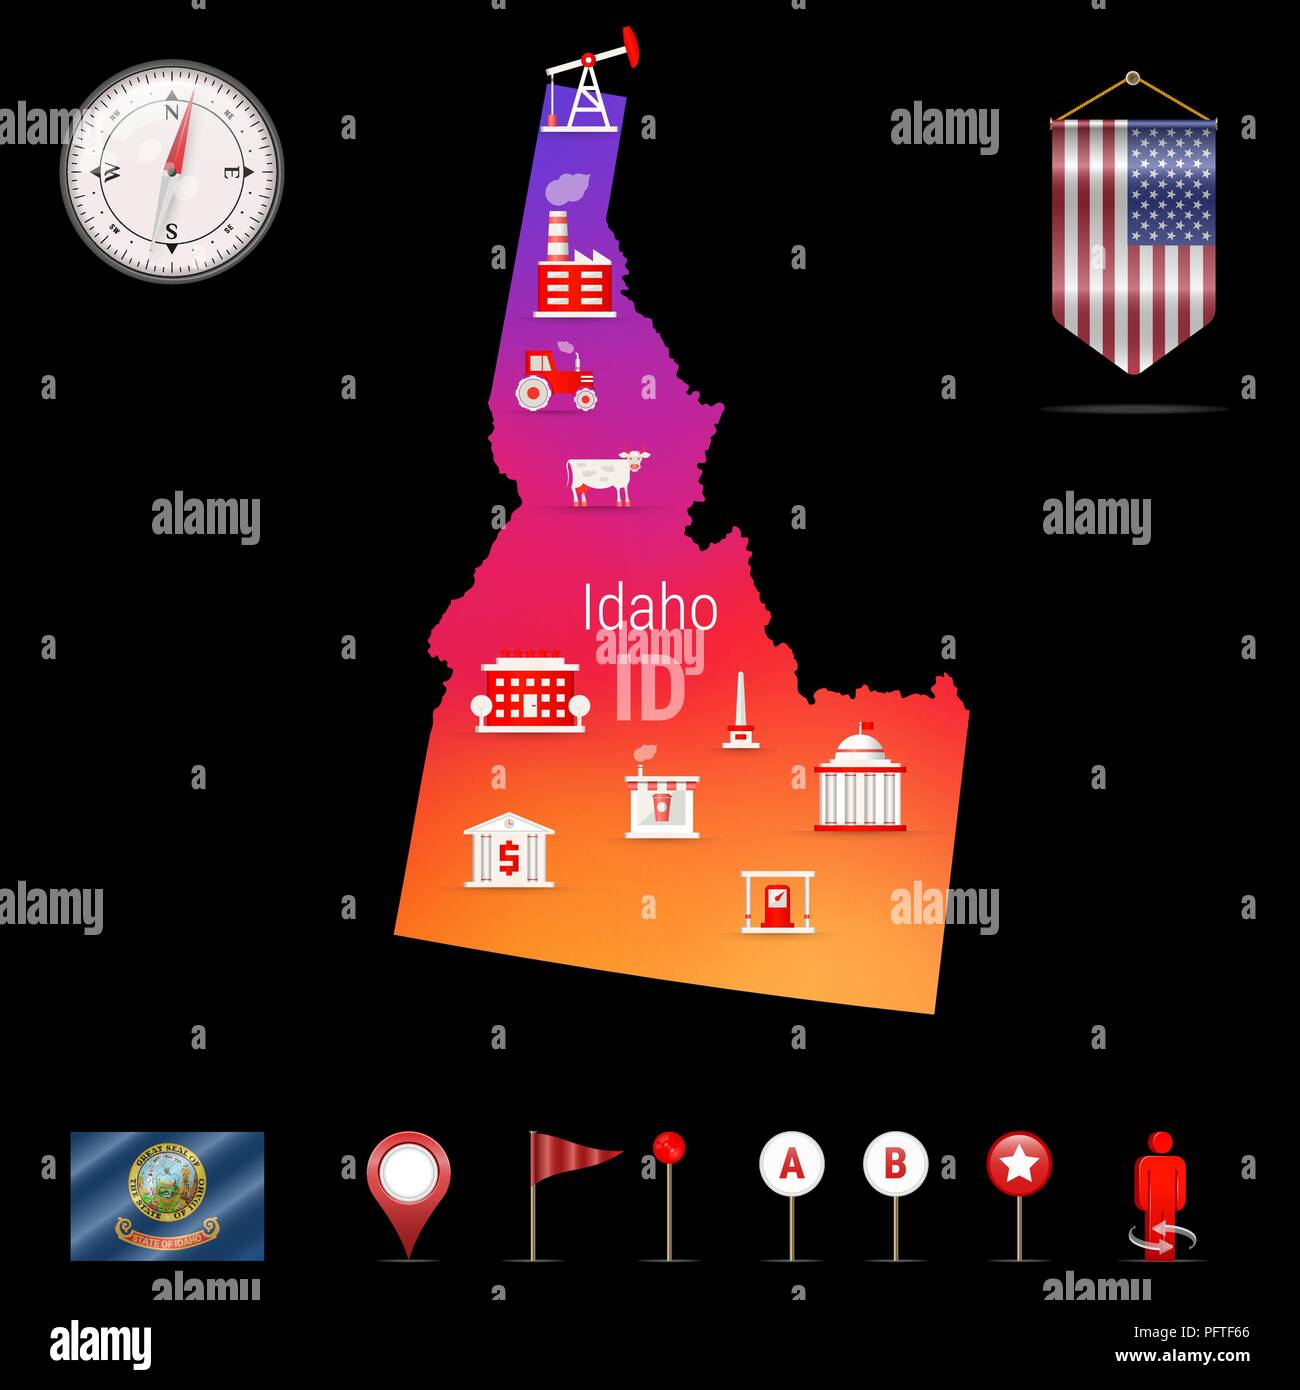 Idaho Vector Map, Night View. Compass Icon, Map Navigation Elements. Pennant Flag of the United States. Vector Flag of Idaho. Various Industries, Economic Geography Icons. - Stock Vector